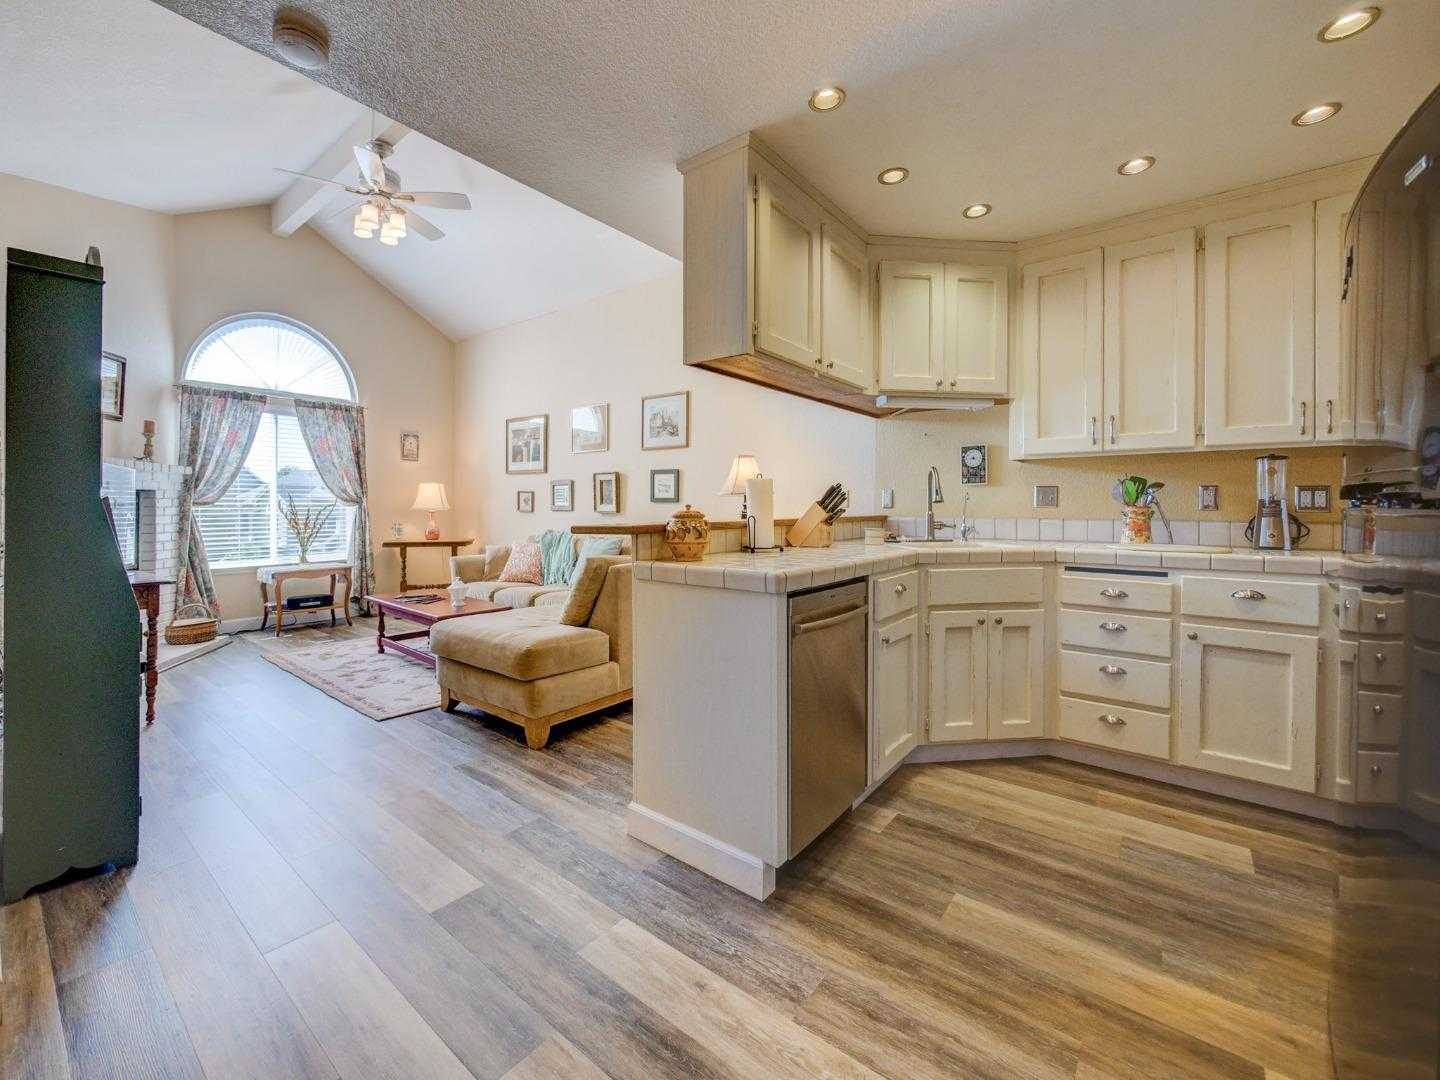 $610,000 - 2Br/2Ba -  for Sale in Scotts Valley